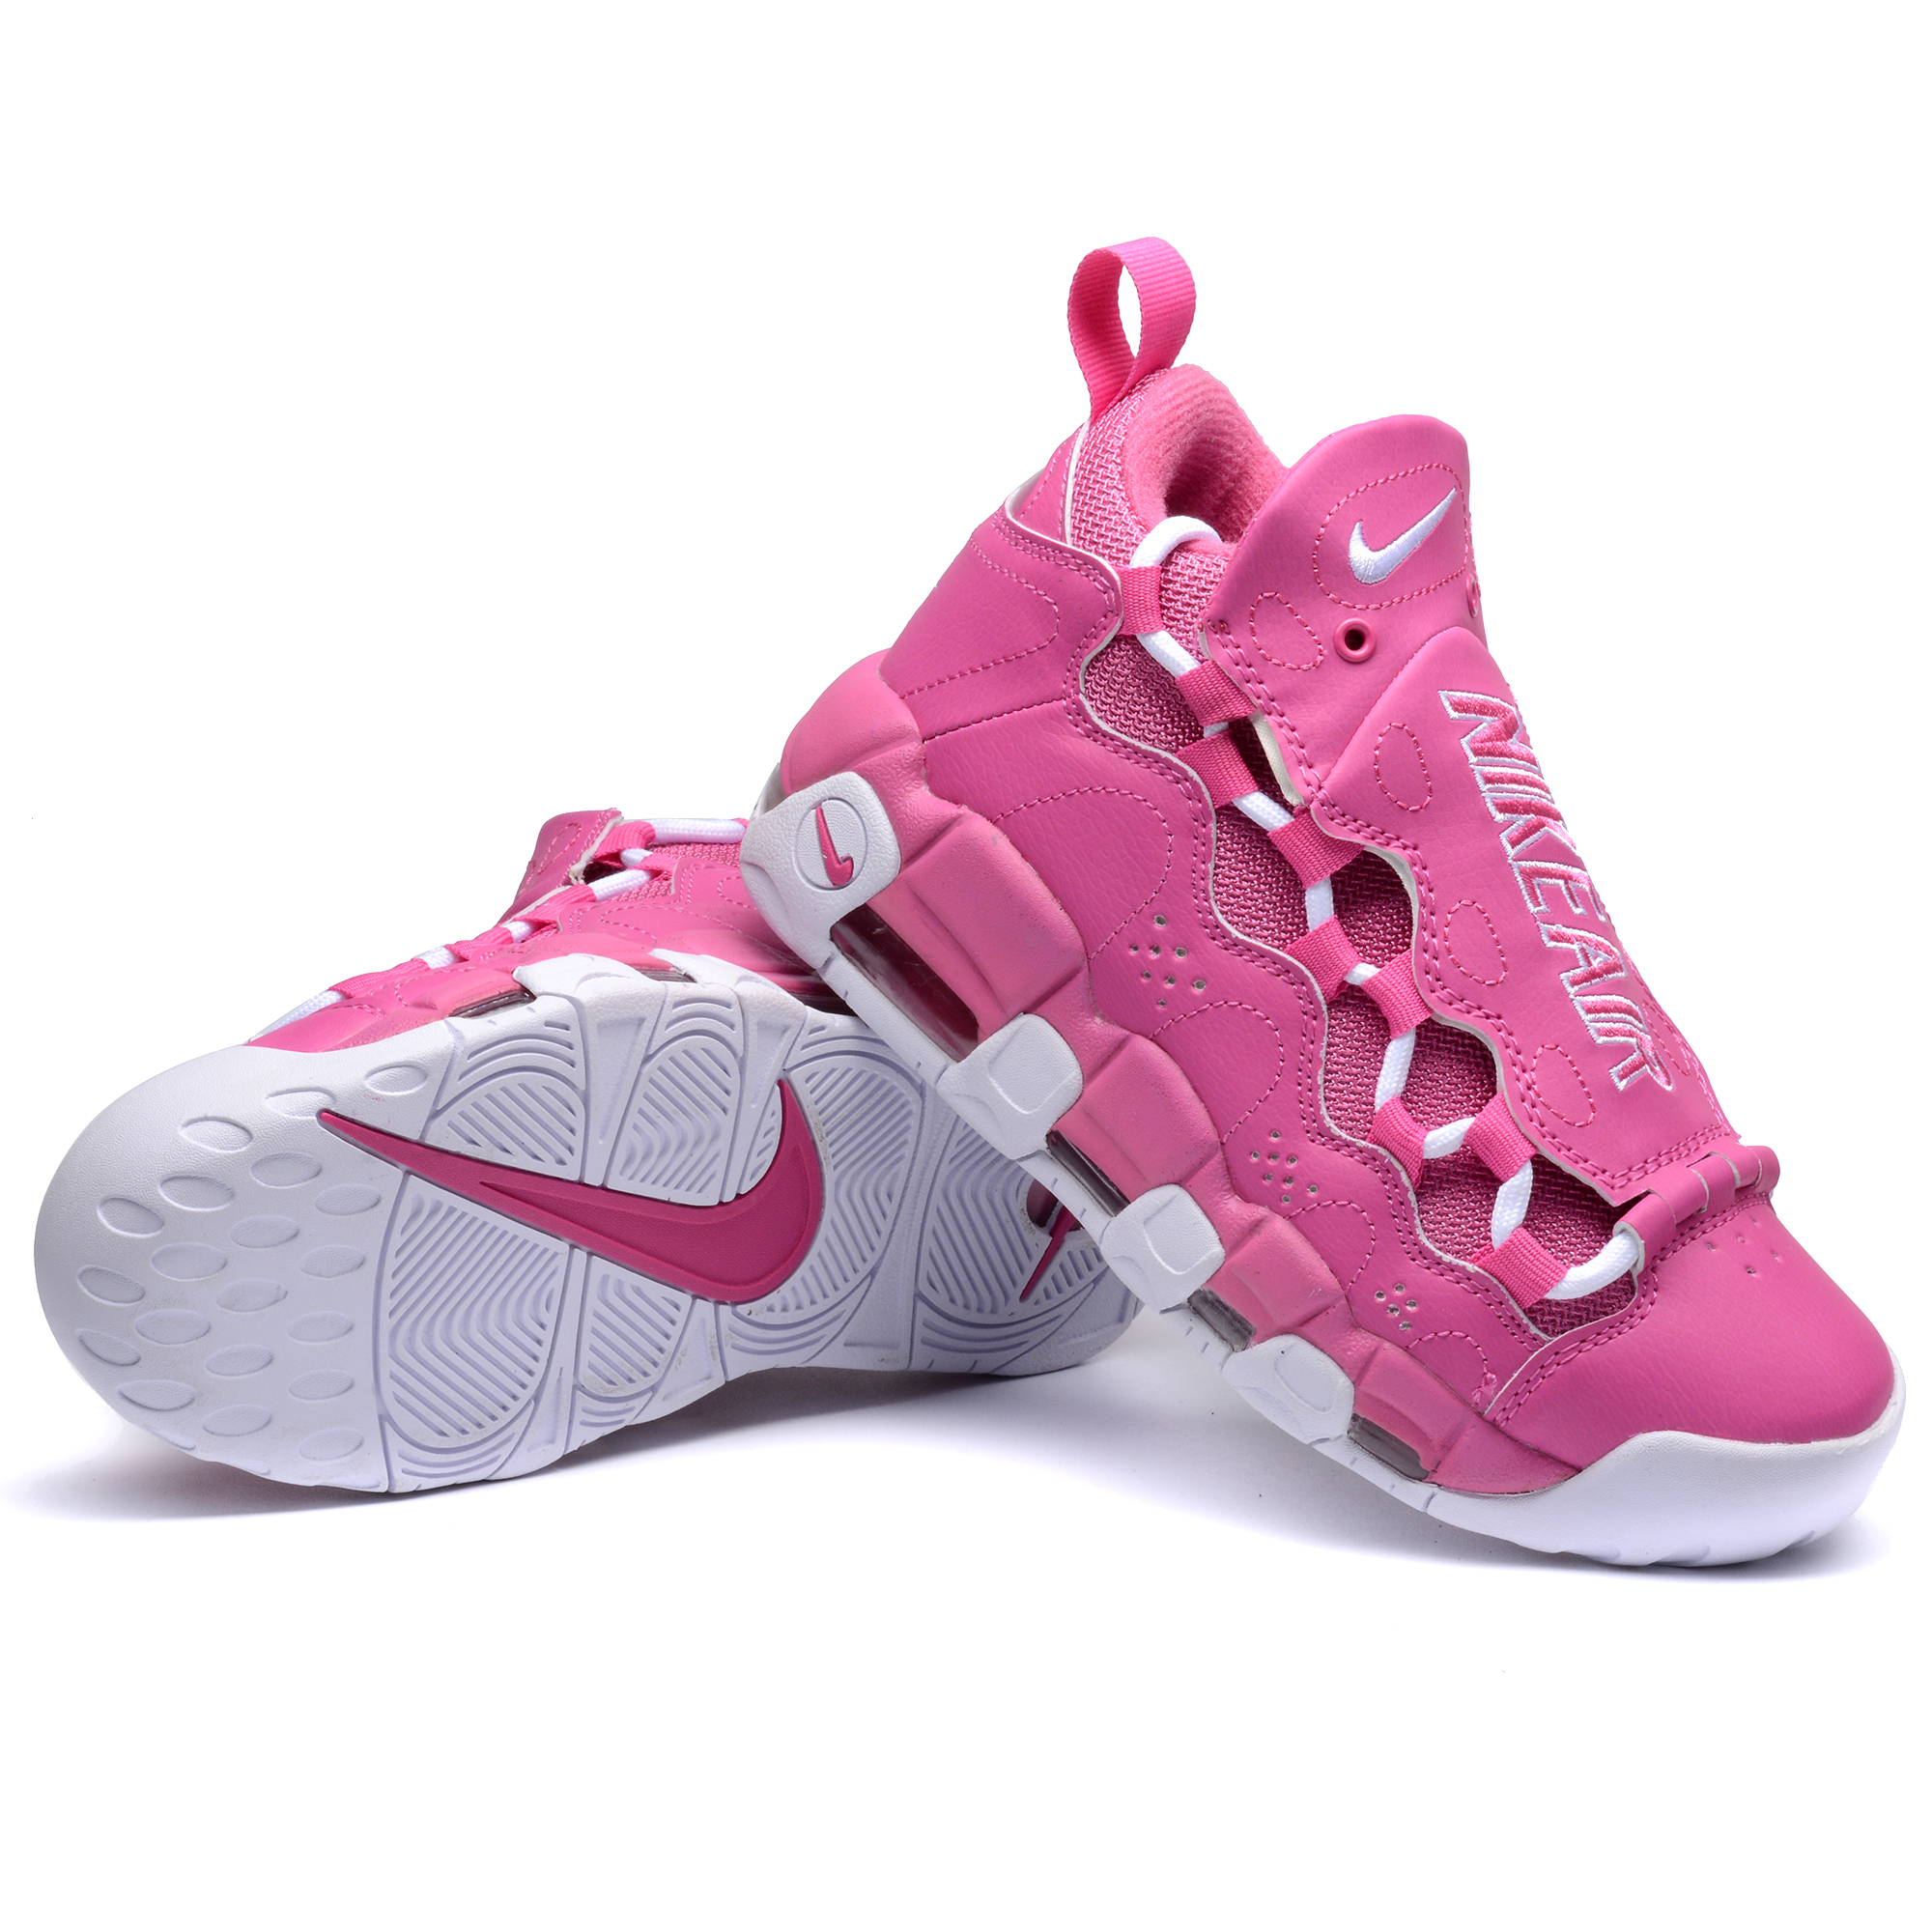 Nike Air More Money QS Pink White Shoes